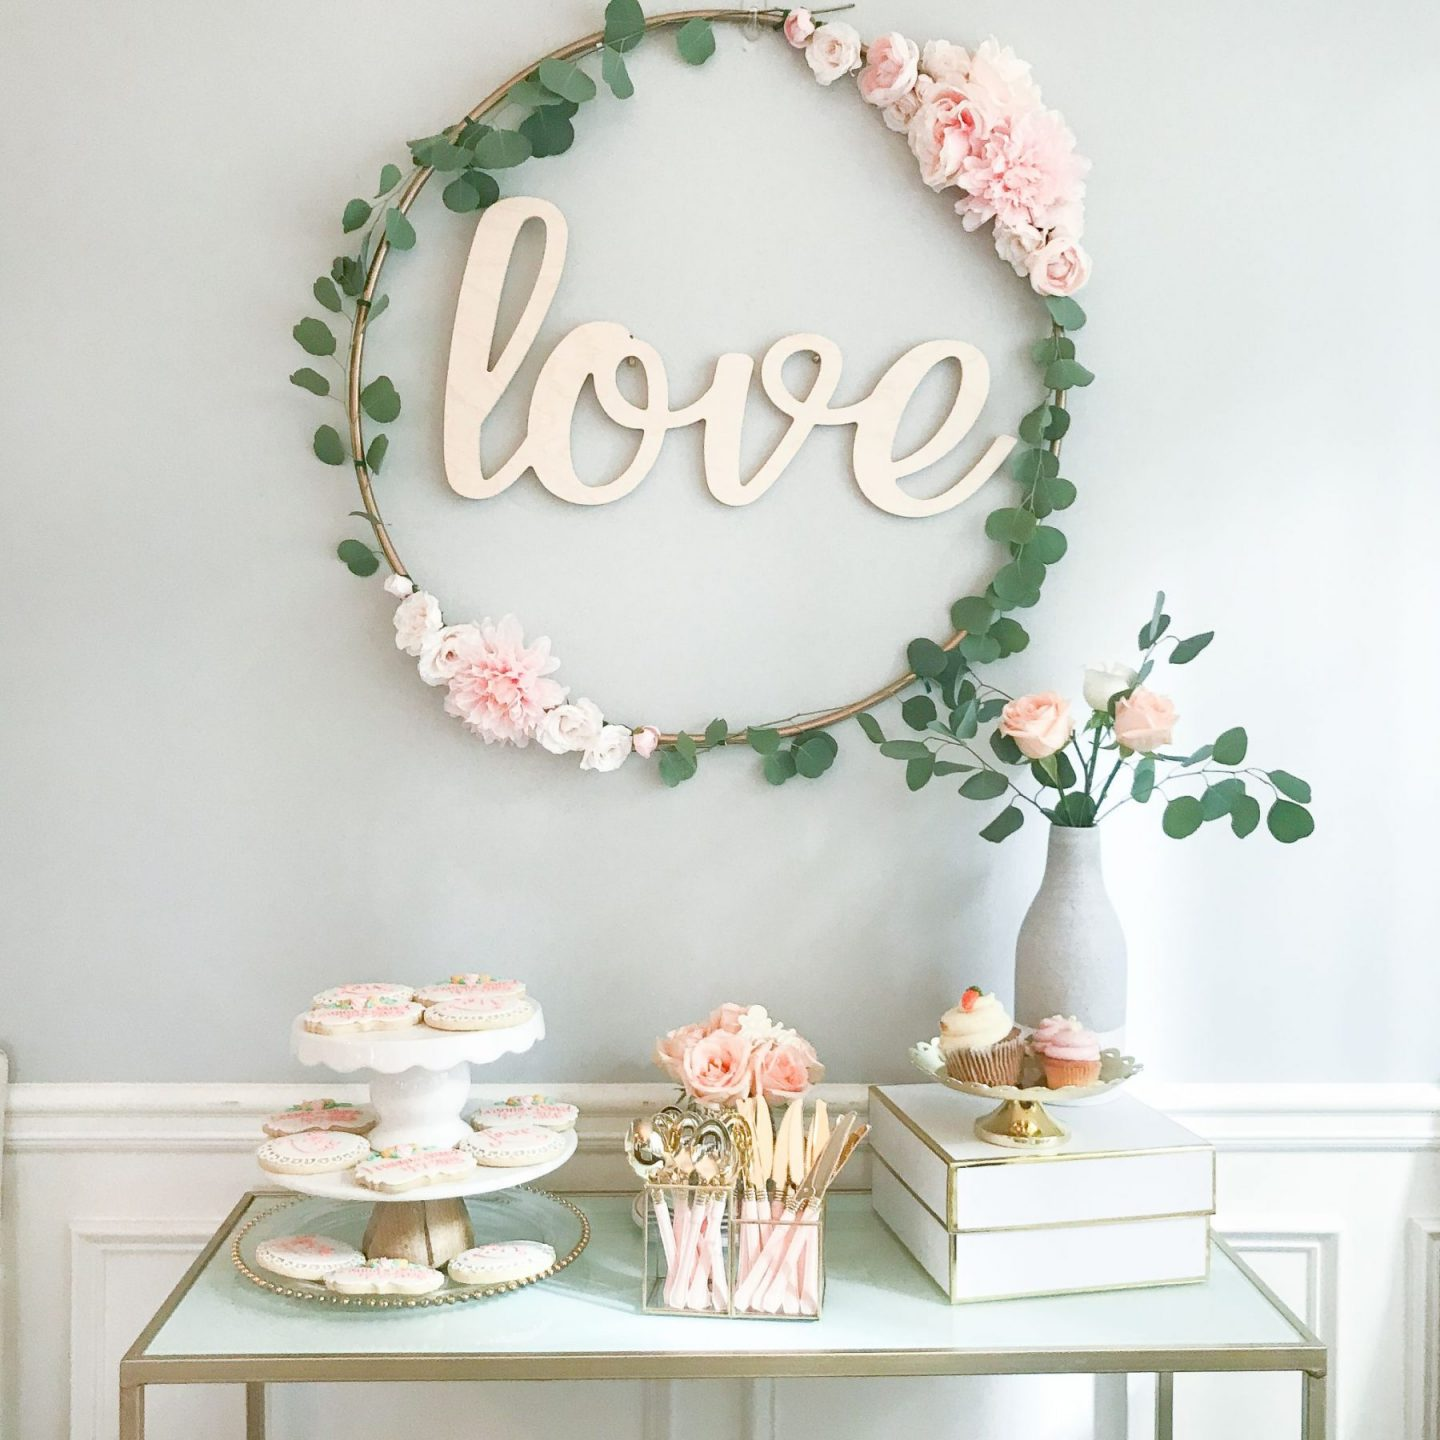 diy bridal shower decor, diy hula hoop love sign, diy wedding decor